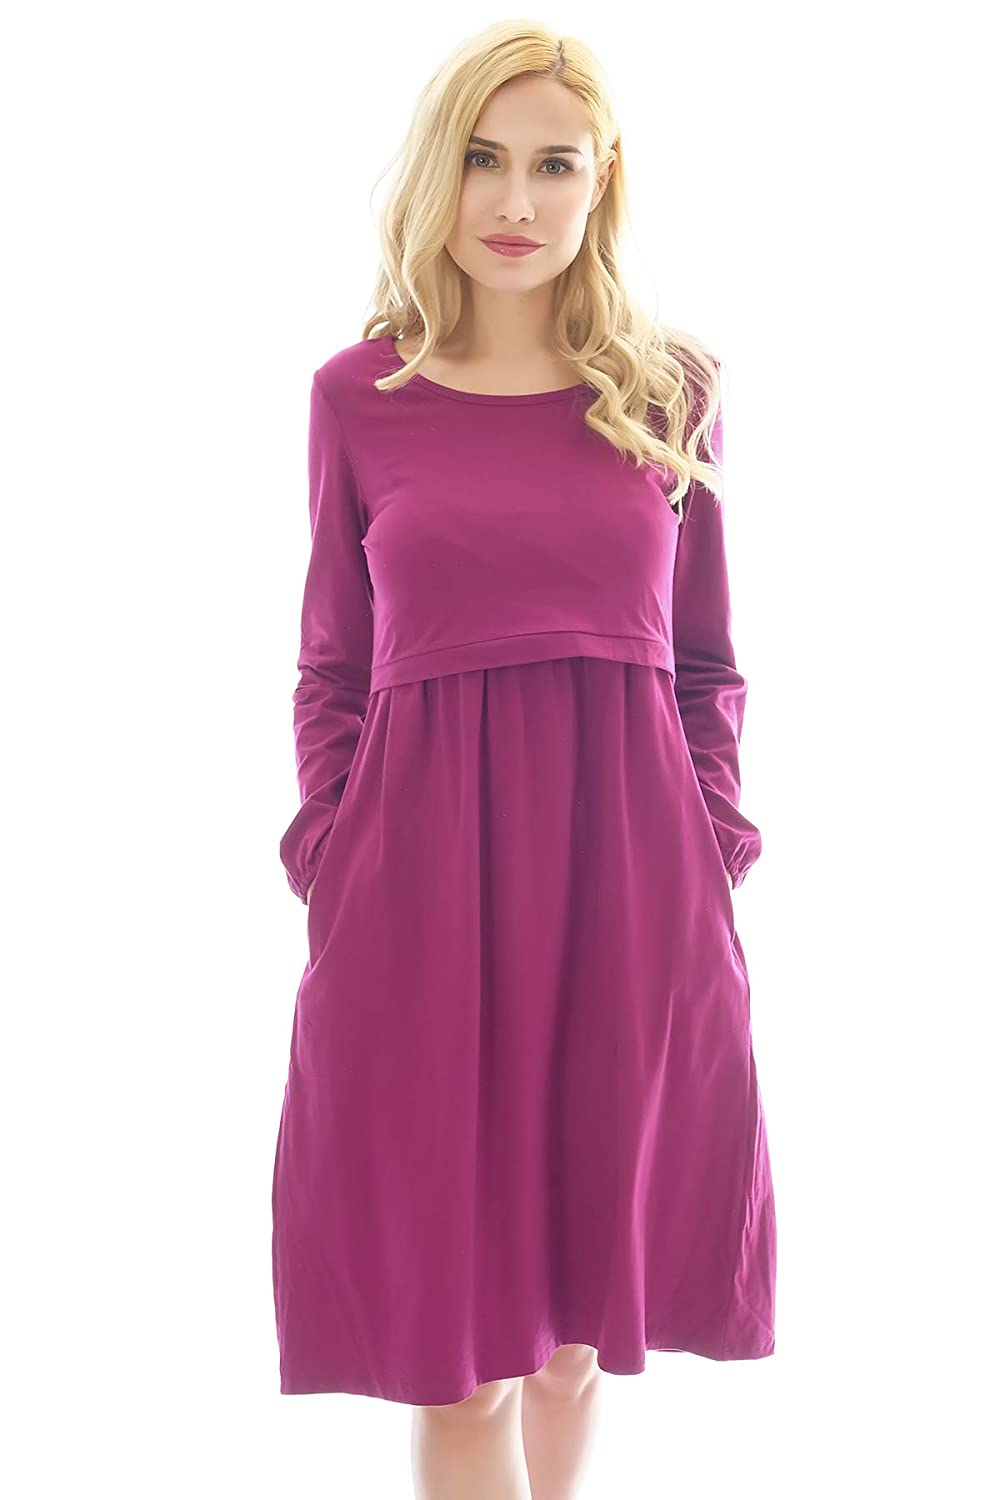 Bearsland Women's Long Sleeve Maternity Dress Empire Waist Nursing Breastfeeding Dress